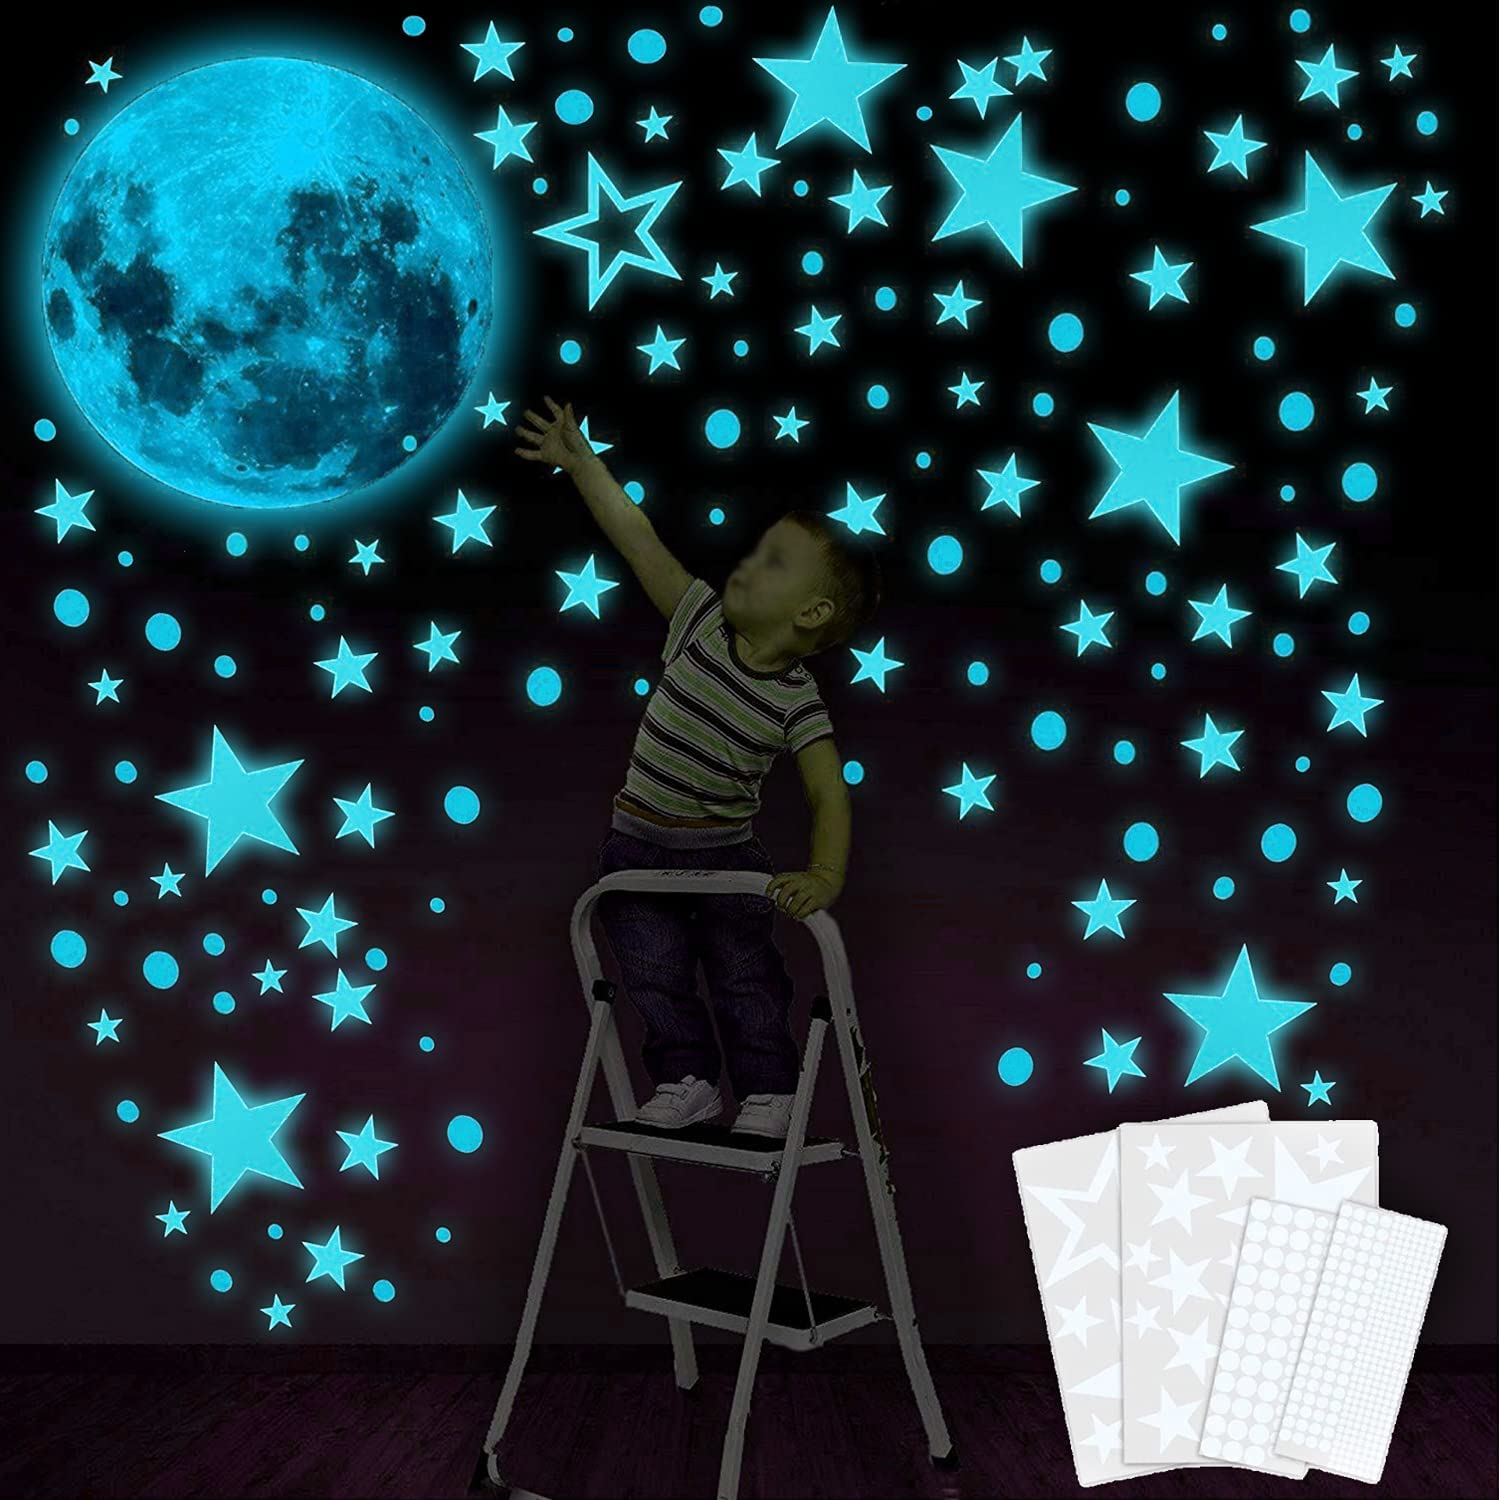 Glow in The Dark Stars for Ceiling, Glow in Dark Stars and Moon, 435 PCS Glow in The Dark Star Stickers for Kids Girls Boys, Wall Decors for Bedroom, Living Room, Birthday Party (Large, Blue)